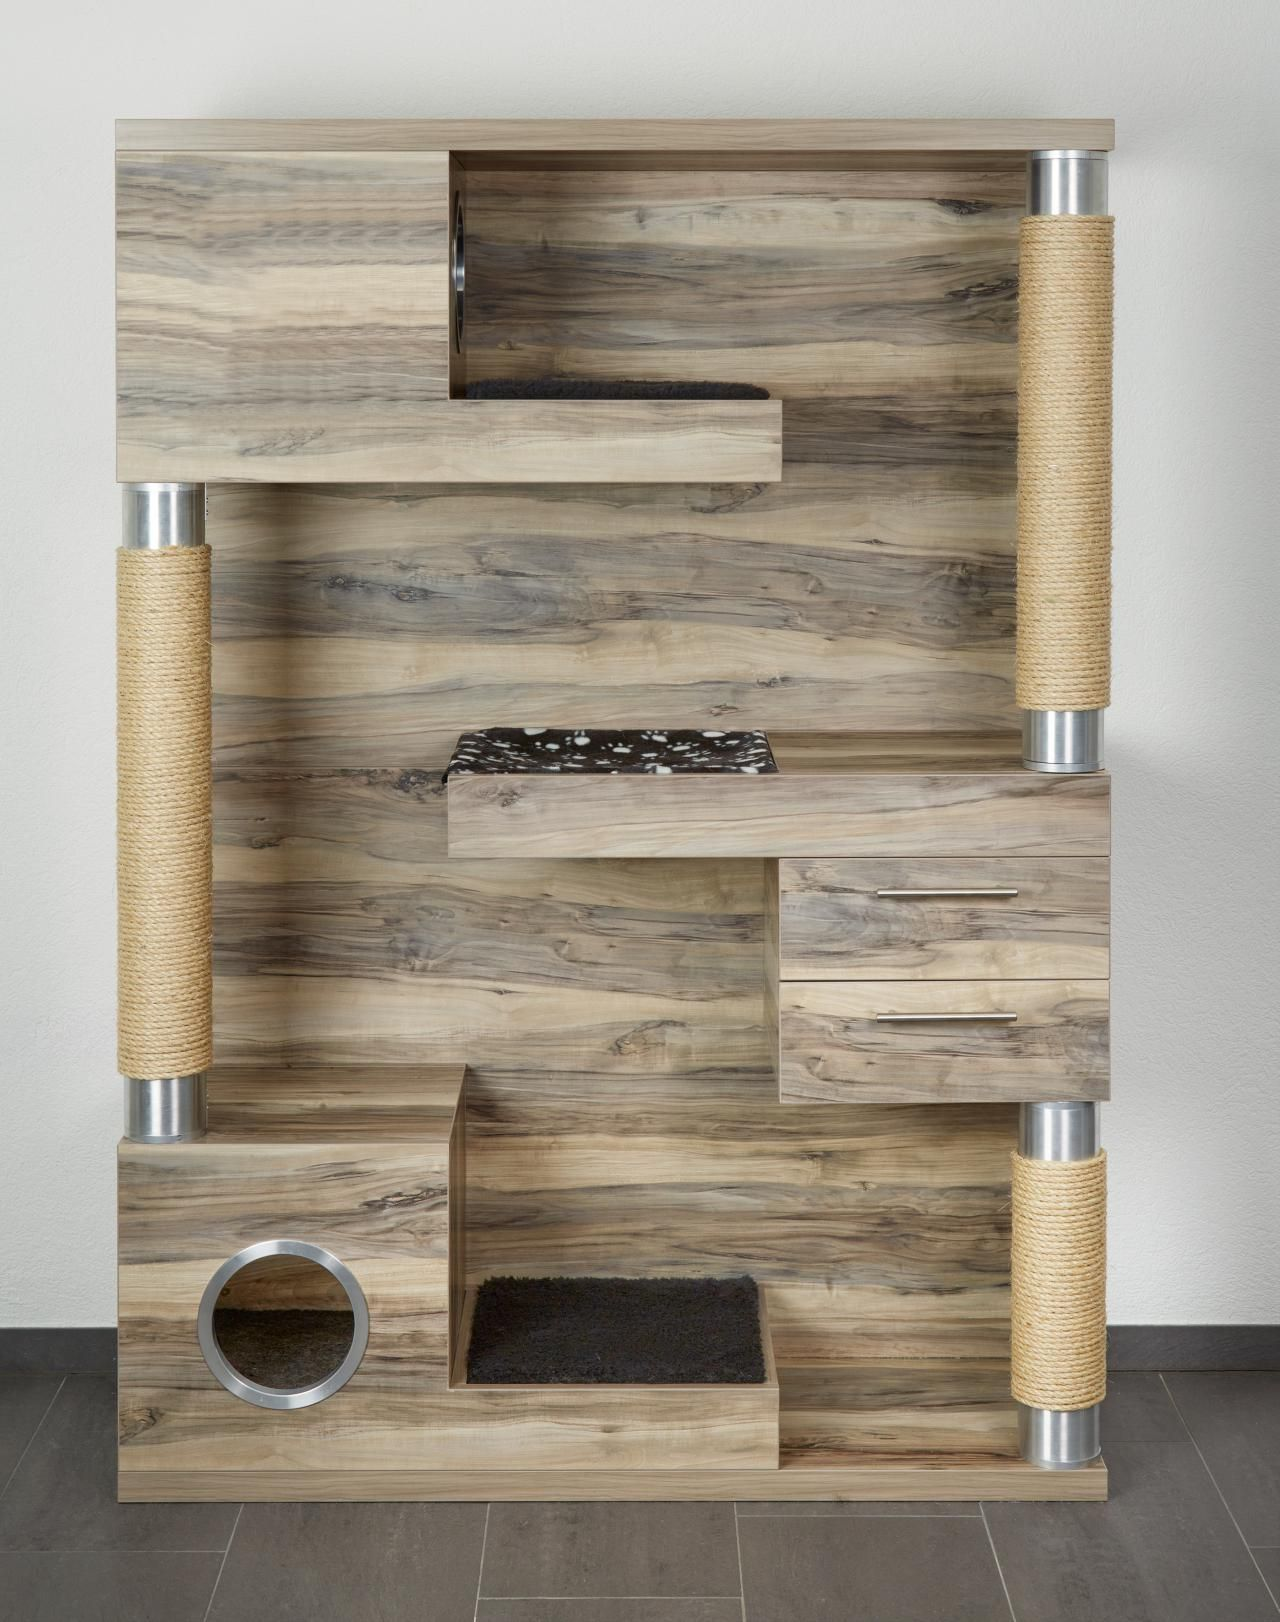 katzenbaum cat tree diy m bel pinterest katzen katzen zubeh r und kratzbaum. Black Bedroom Furniture Sets. Home Design Ideas